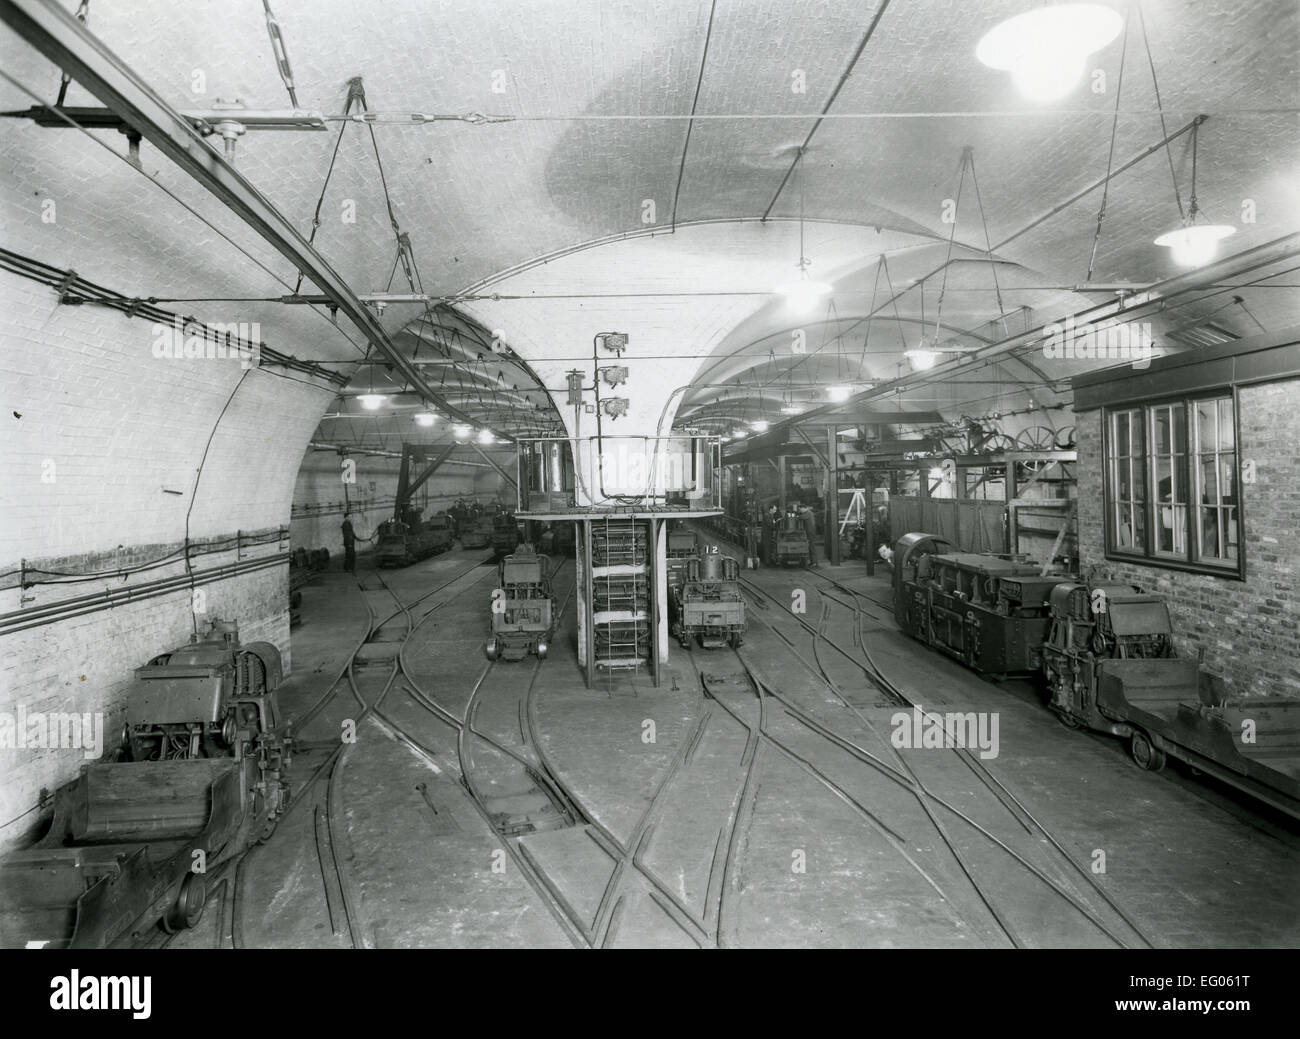 Post Office Railway - car depot and workshop. It ran for 22 hours a day from 1927 - 2003 and at its peak it employed - Stock Image